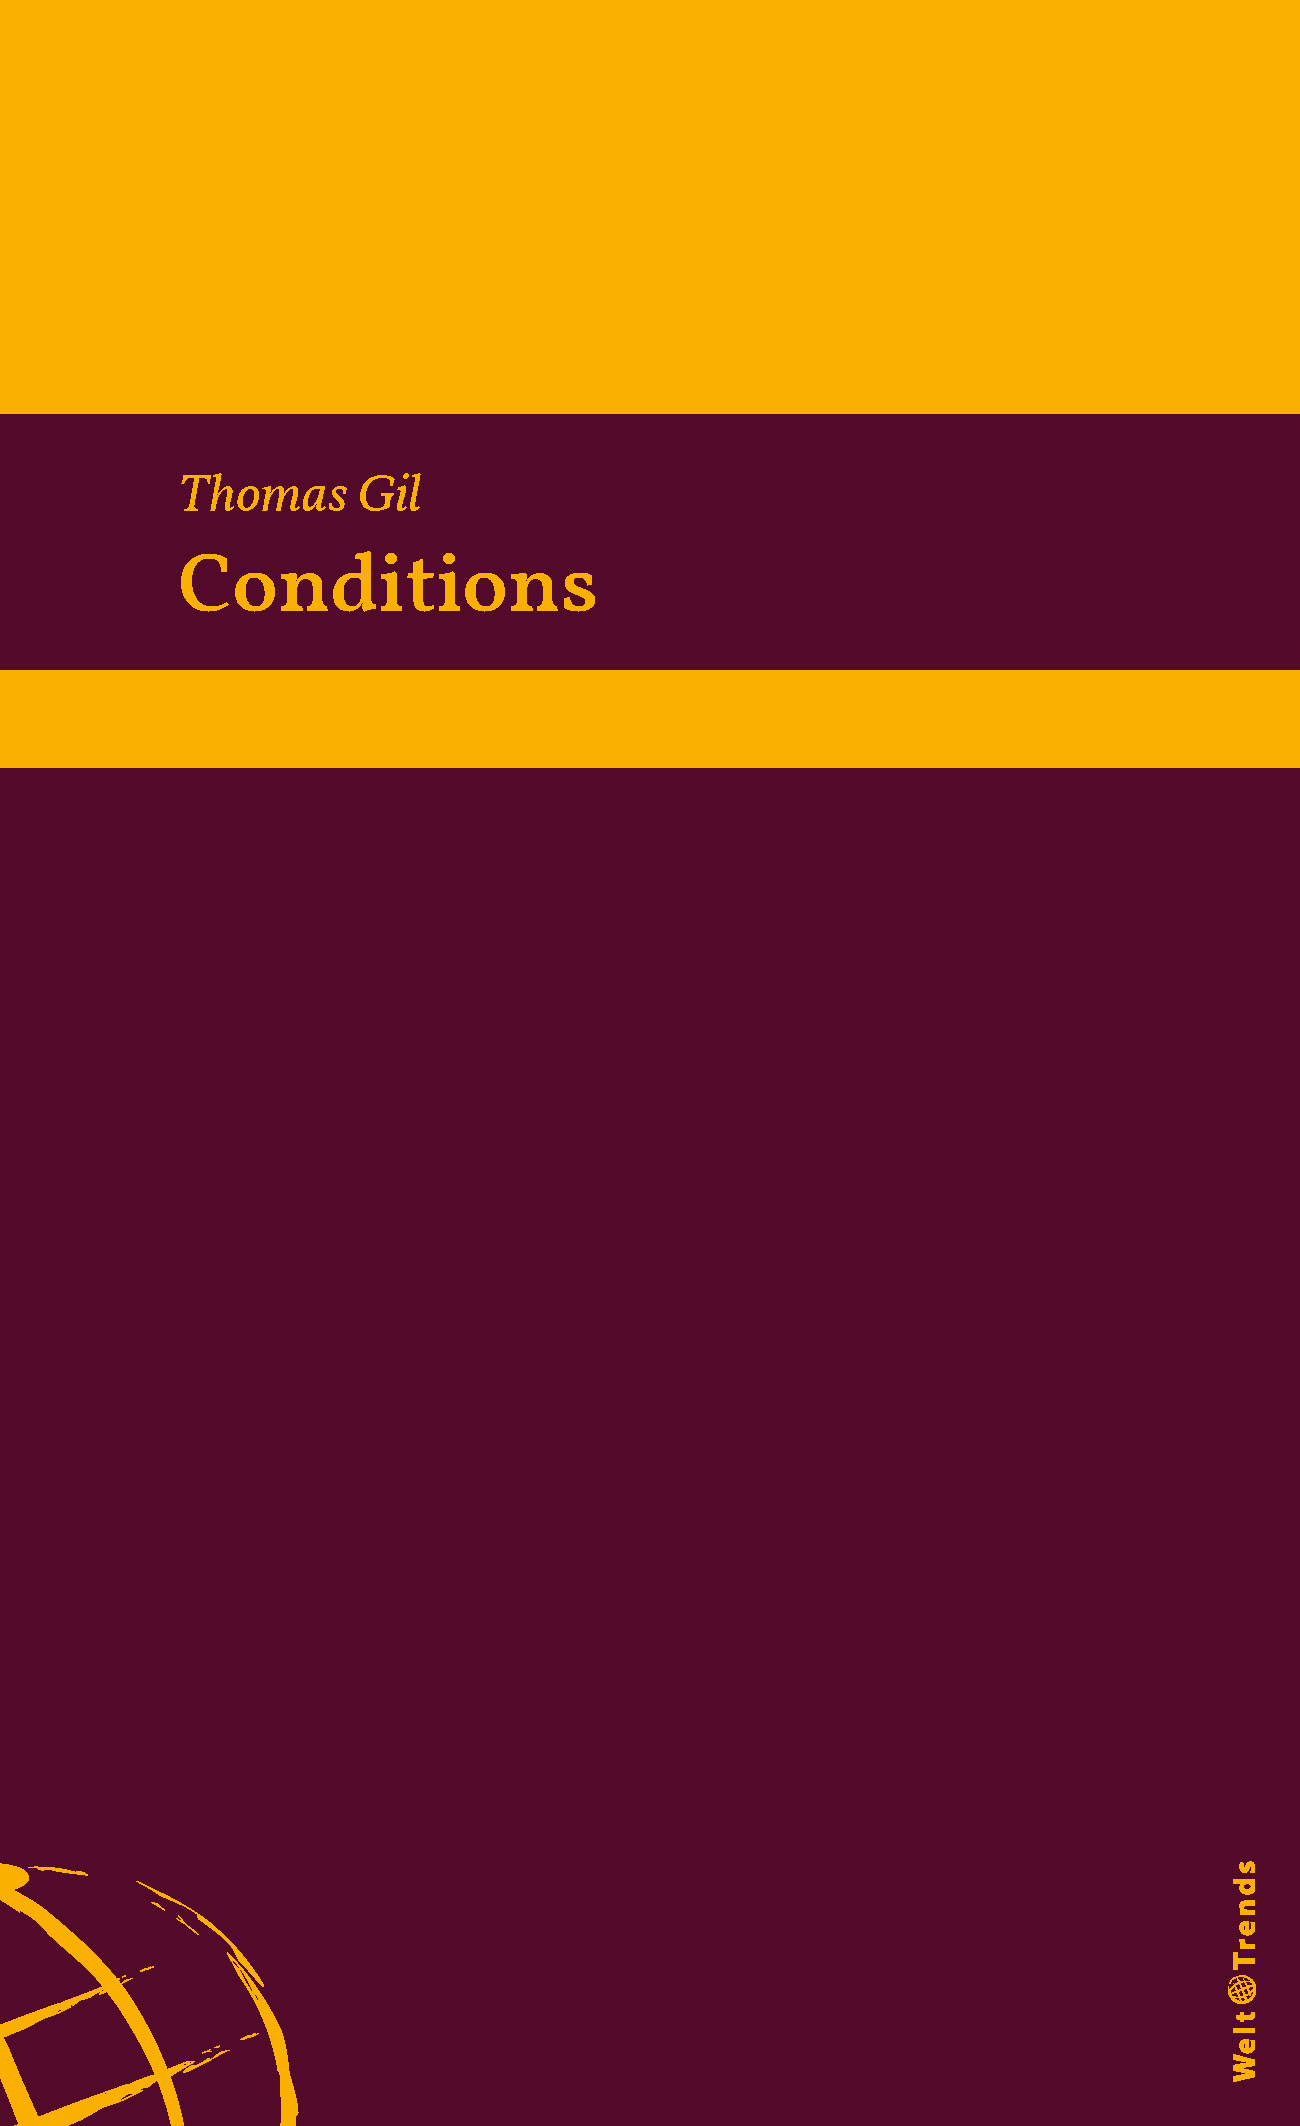 Thomas Gil: Conditions